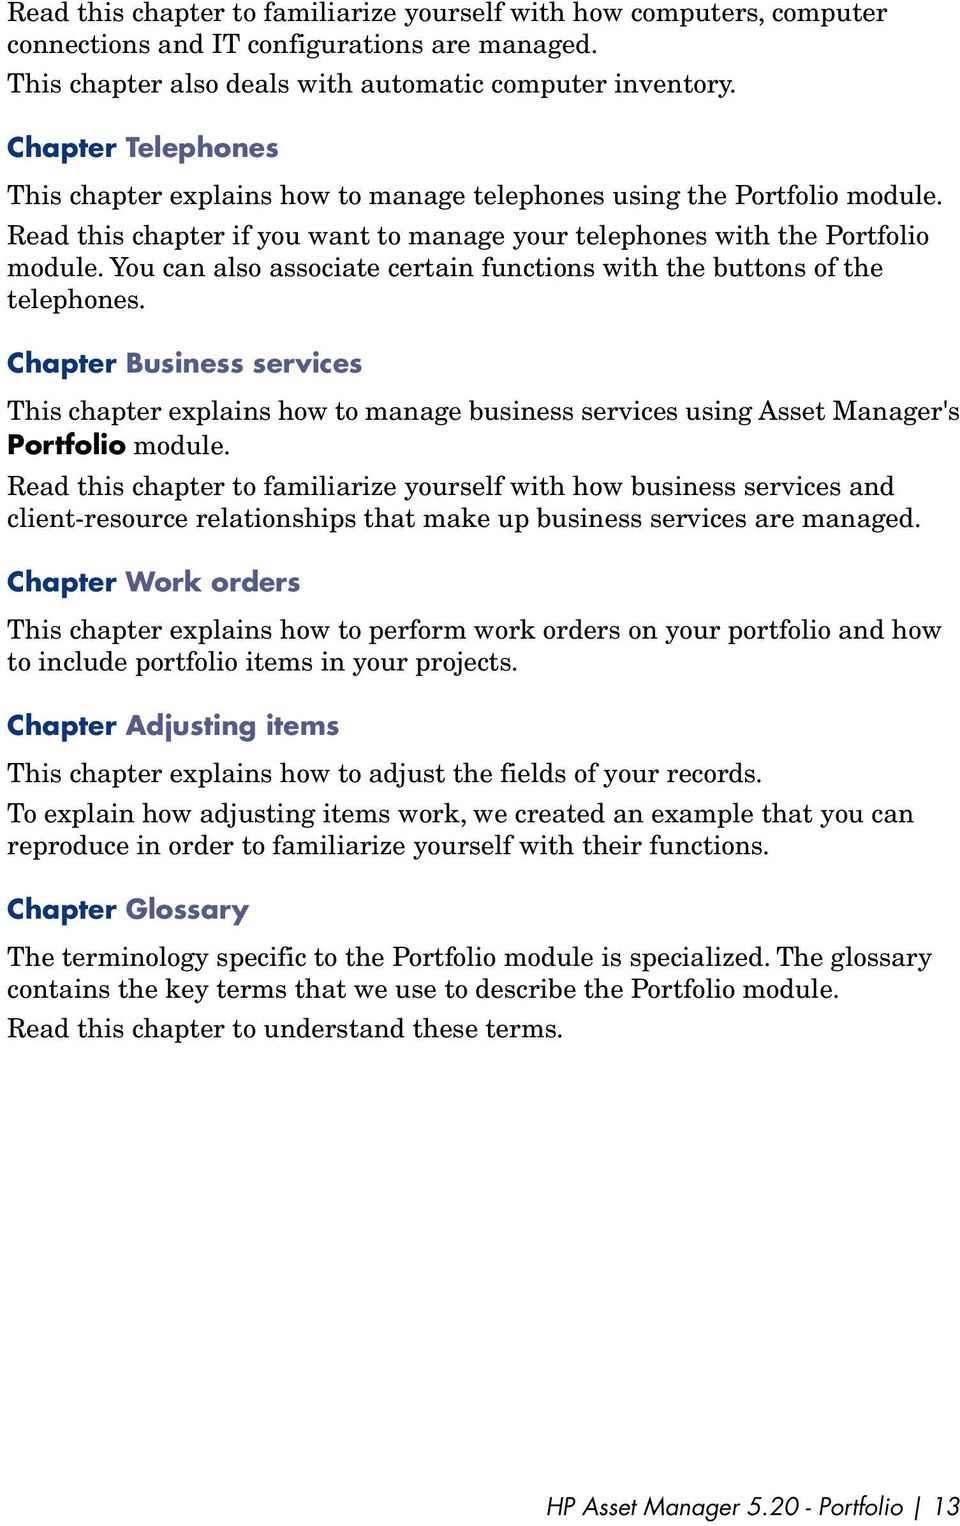 You ca also associate certai fuctios with the buttos of the telephoes. Chapter Busiess services This chapter explais how to maage busiess services usig Asset Maager's Portfolio module.